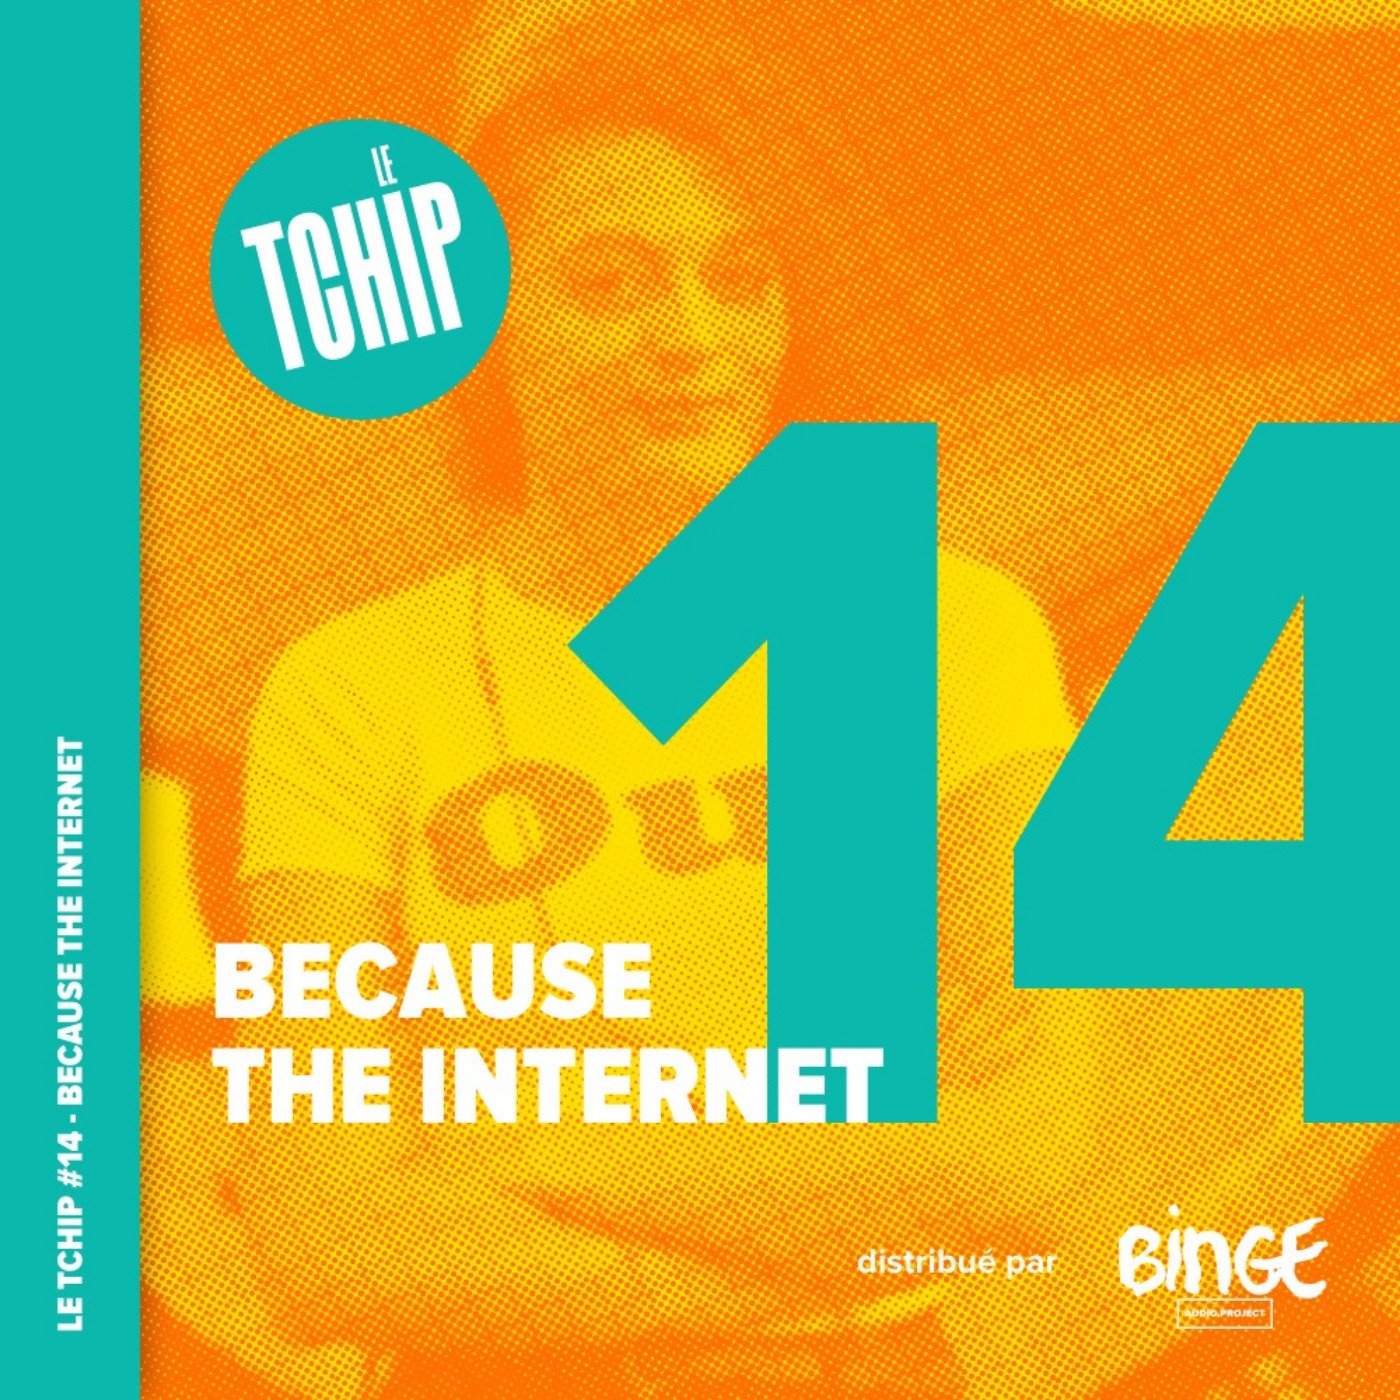 #14 - Because the Internet